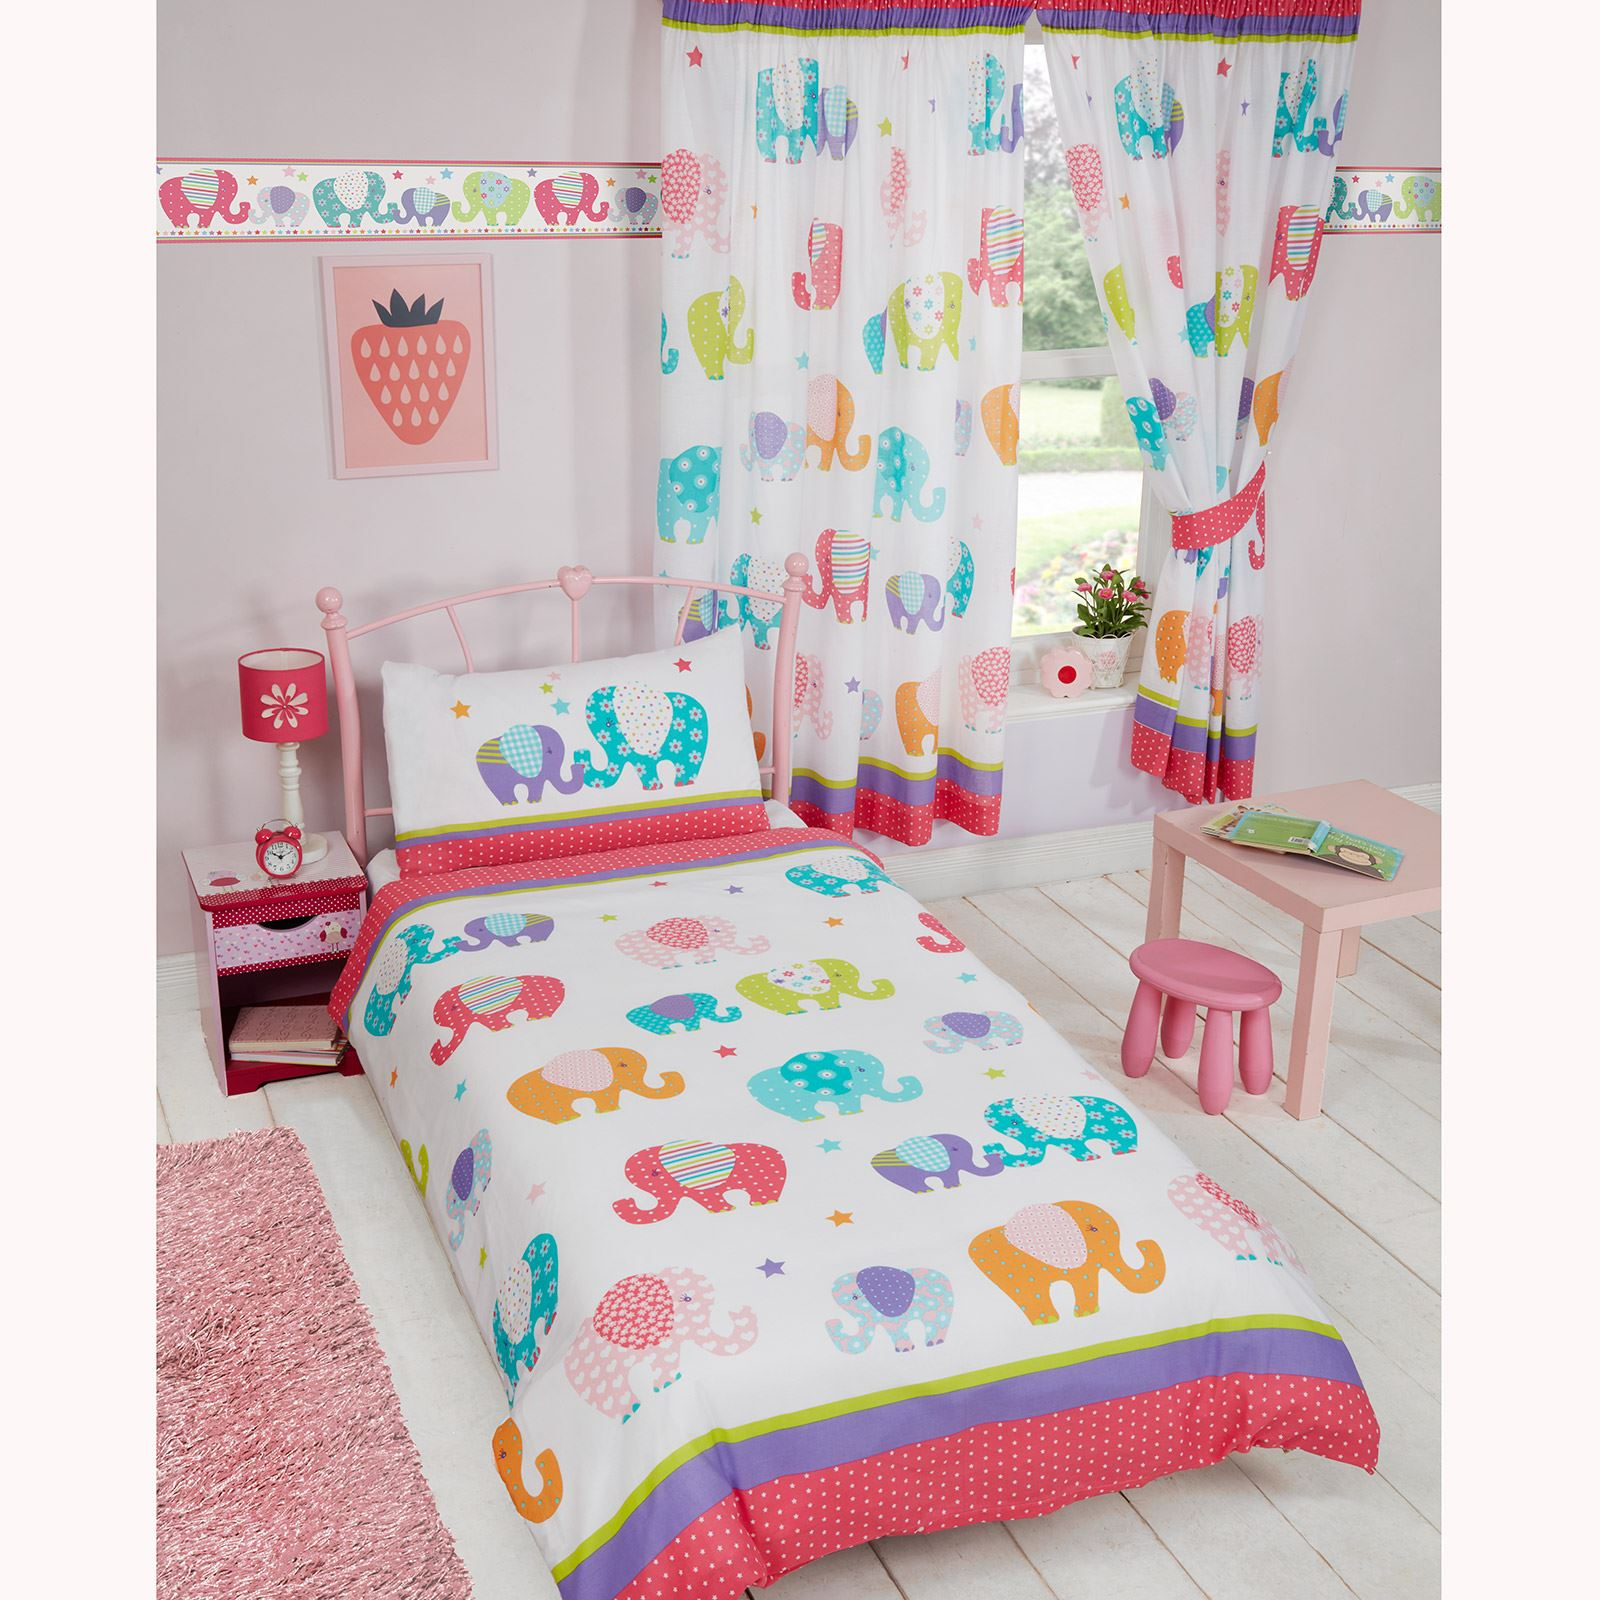 itm com cover crib linnlive cribs new sets duvet images cot bedding solar dinosaur junior systems unicorn toddler